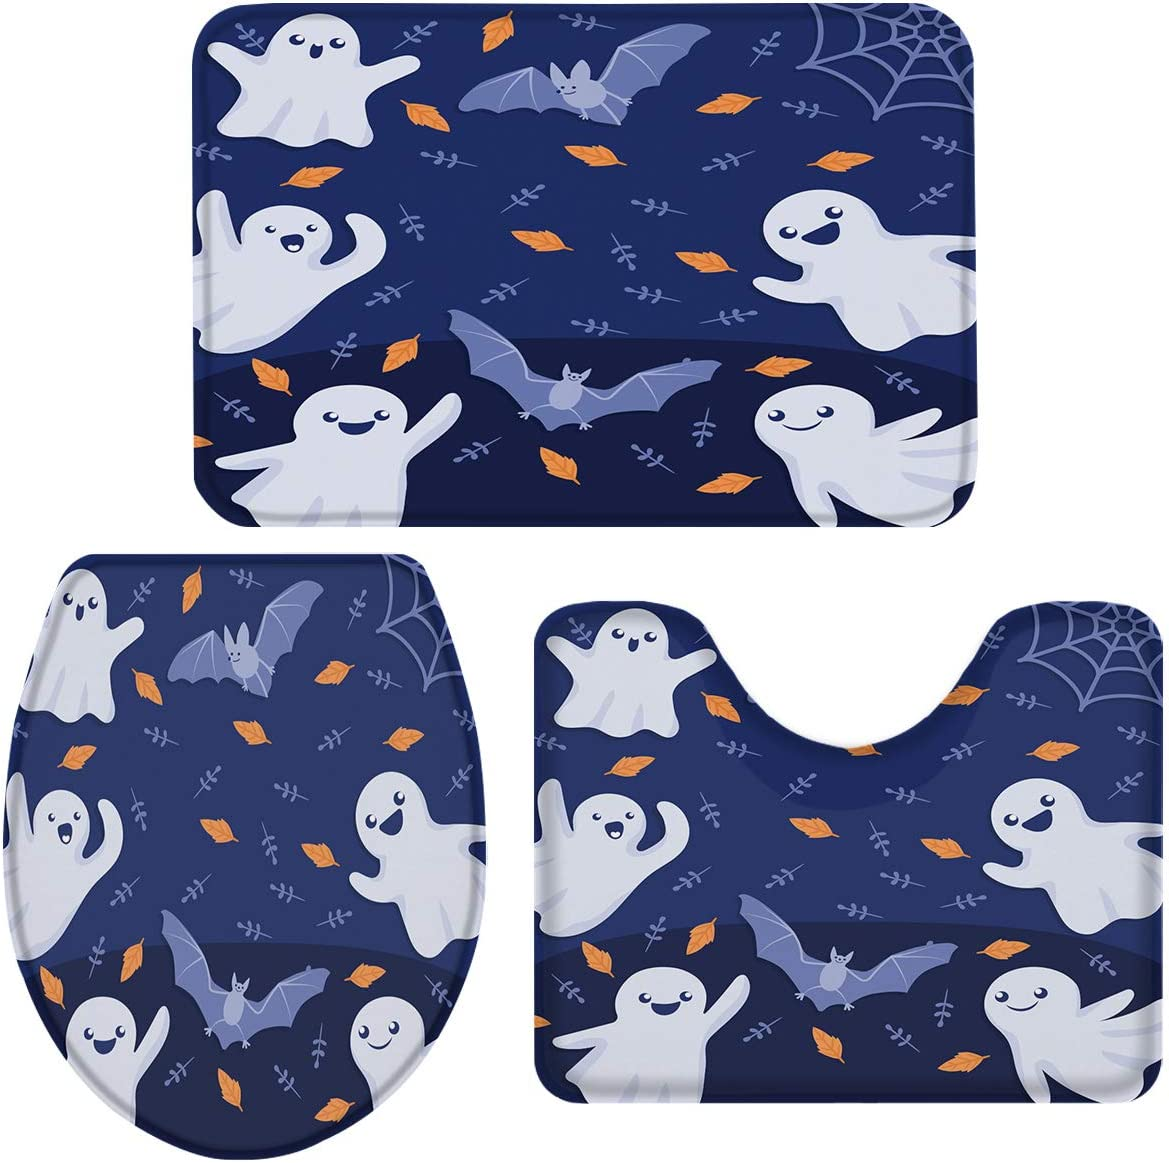 Limited time trial price Halloween 3 Piece Bath Rugs Gh Lovely 25% OFF Bat Cartoon Sets